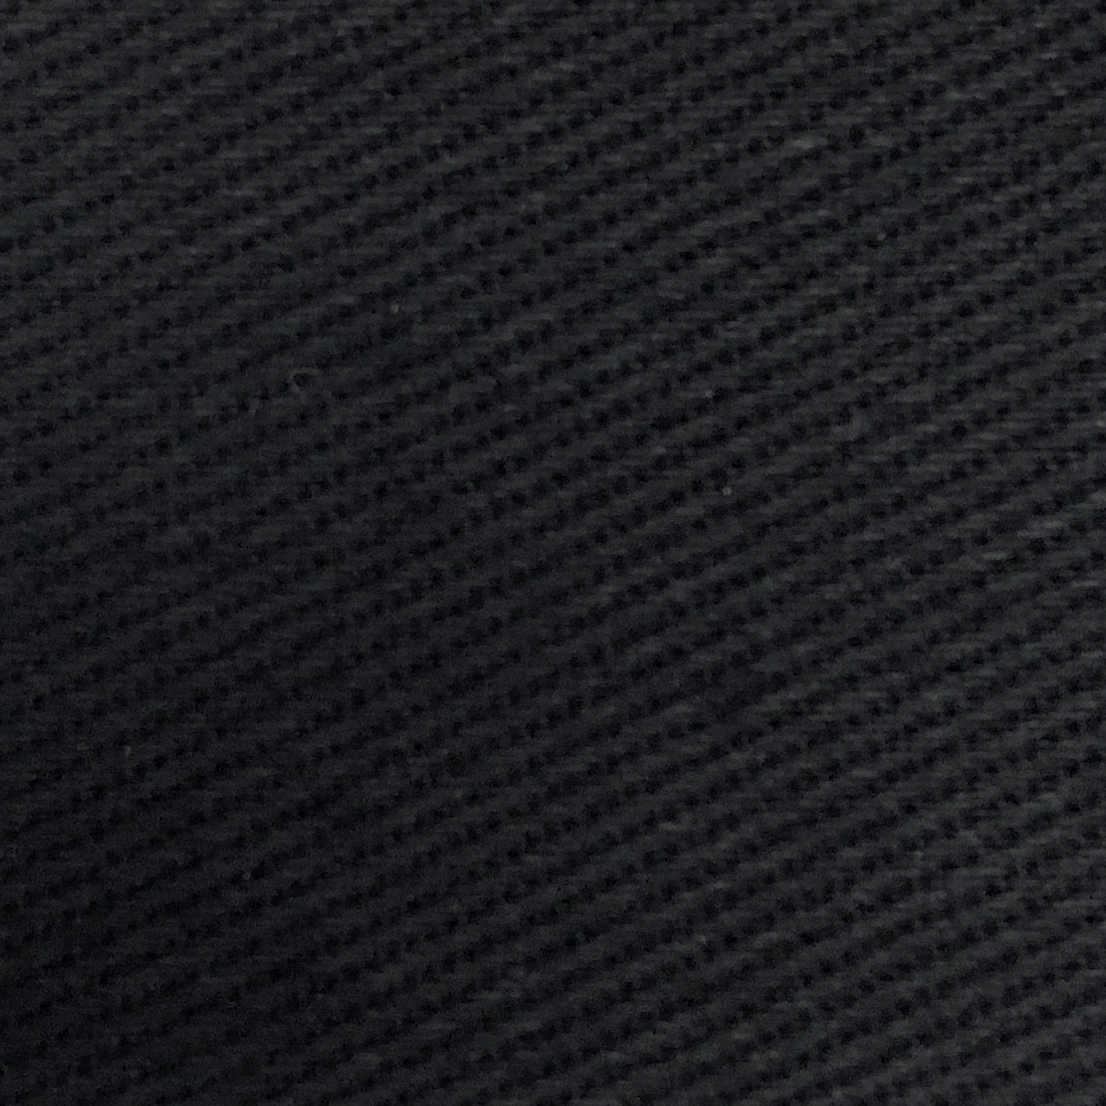 Premium Cotton Twill - >100% Cotton Twill>High density>Softer and comfortable>More obvious twill lines>Most popular in fashion wear>Mostly used in baseball caps, dad hats, and trucker caps